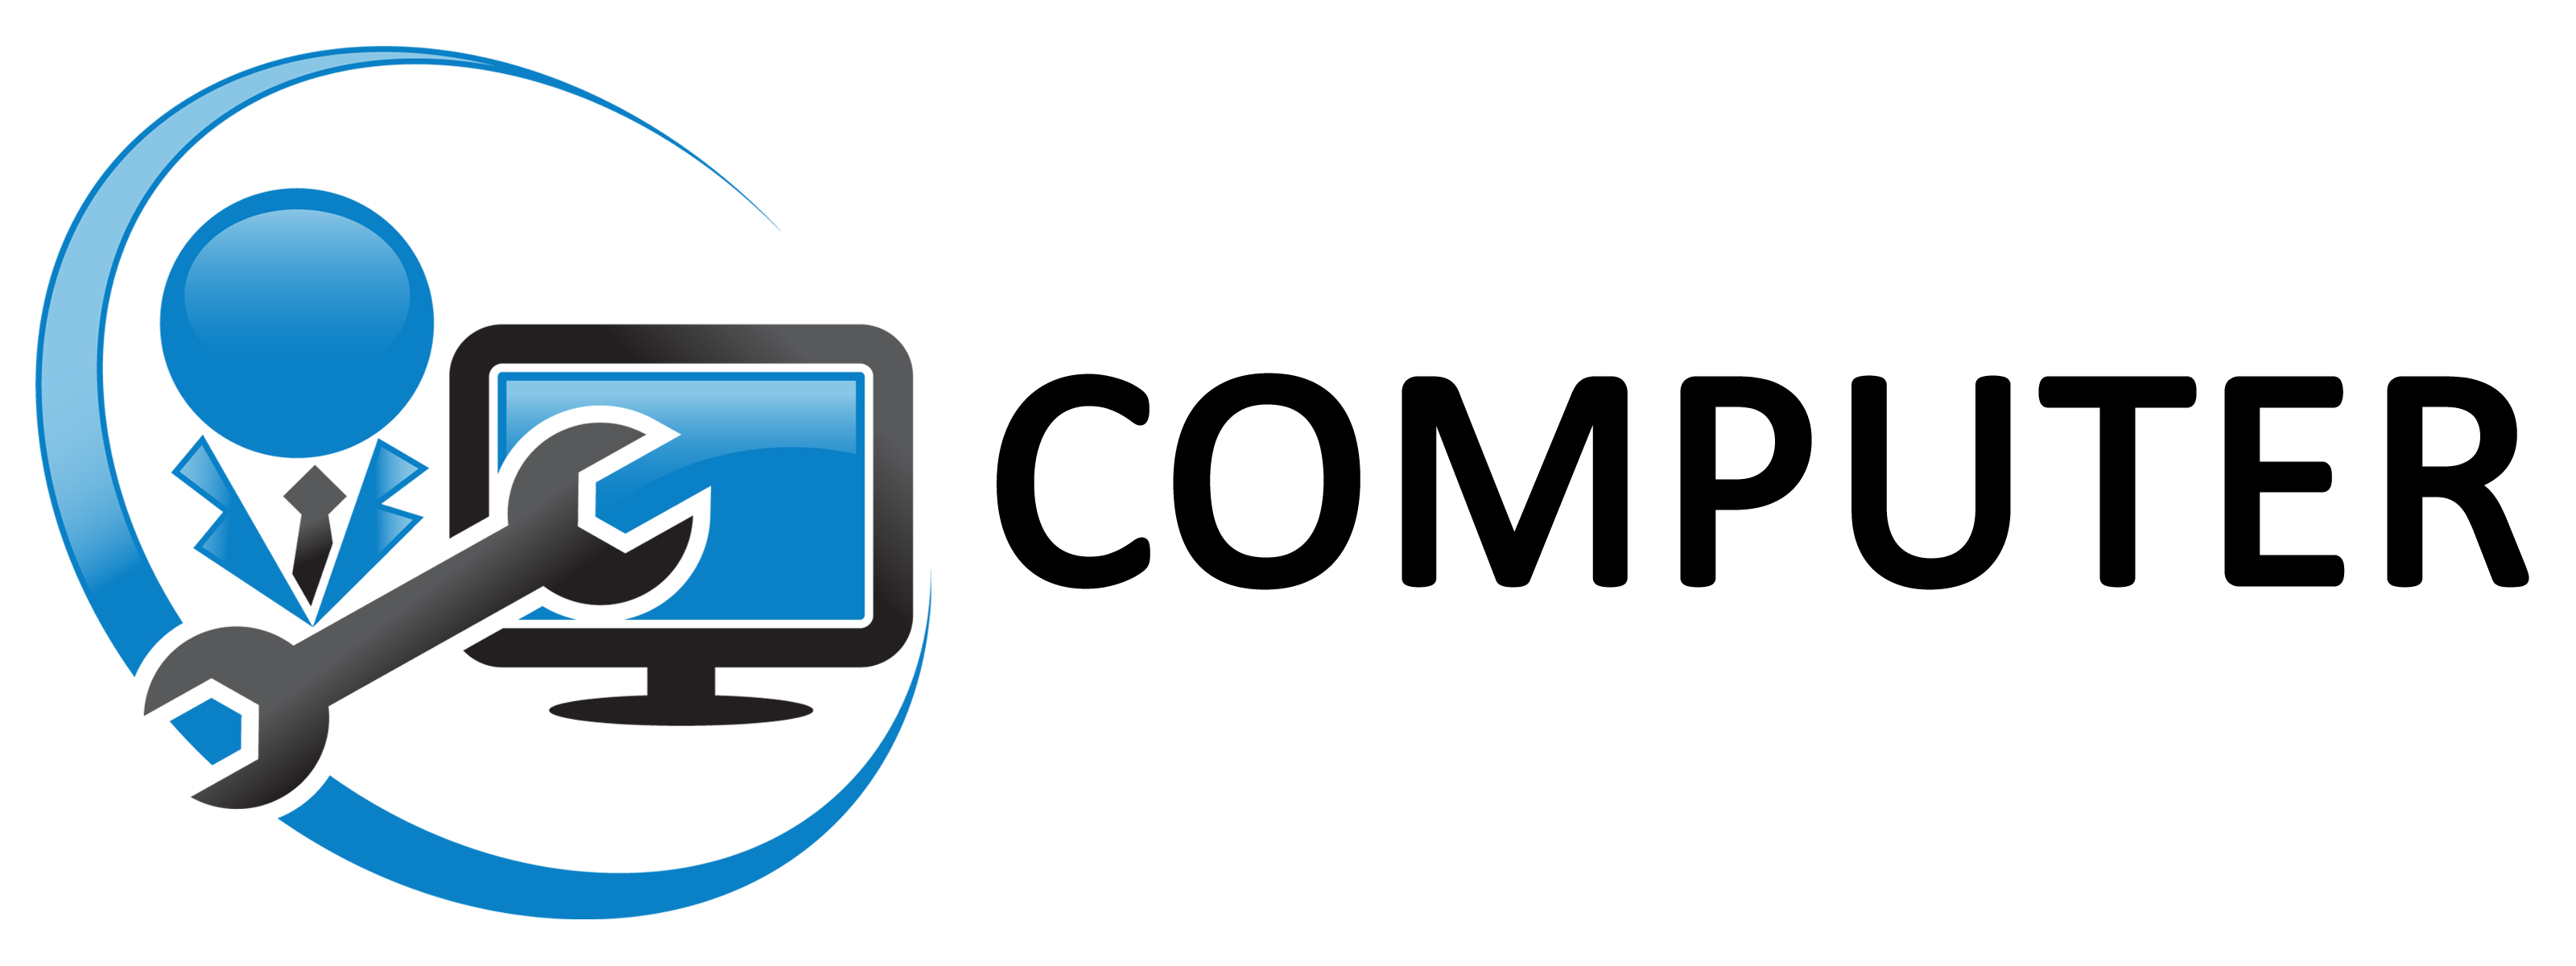 Computer logo png. Yorkshire services it support